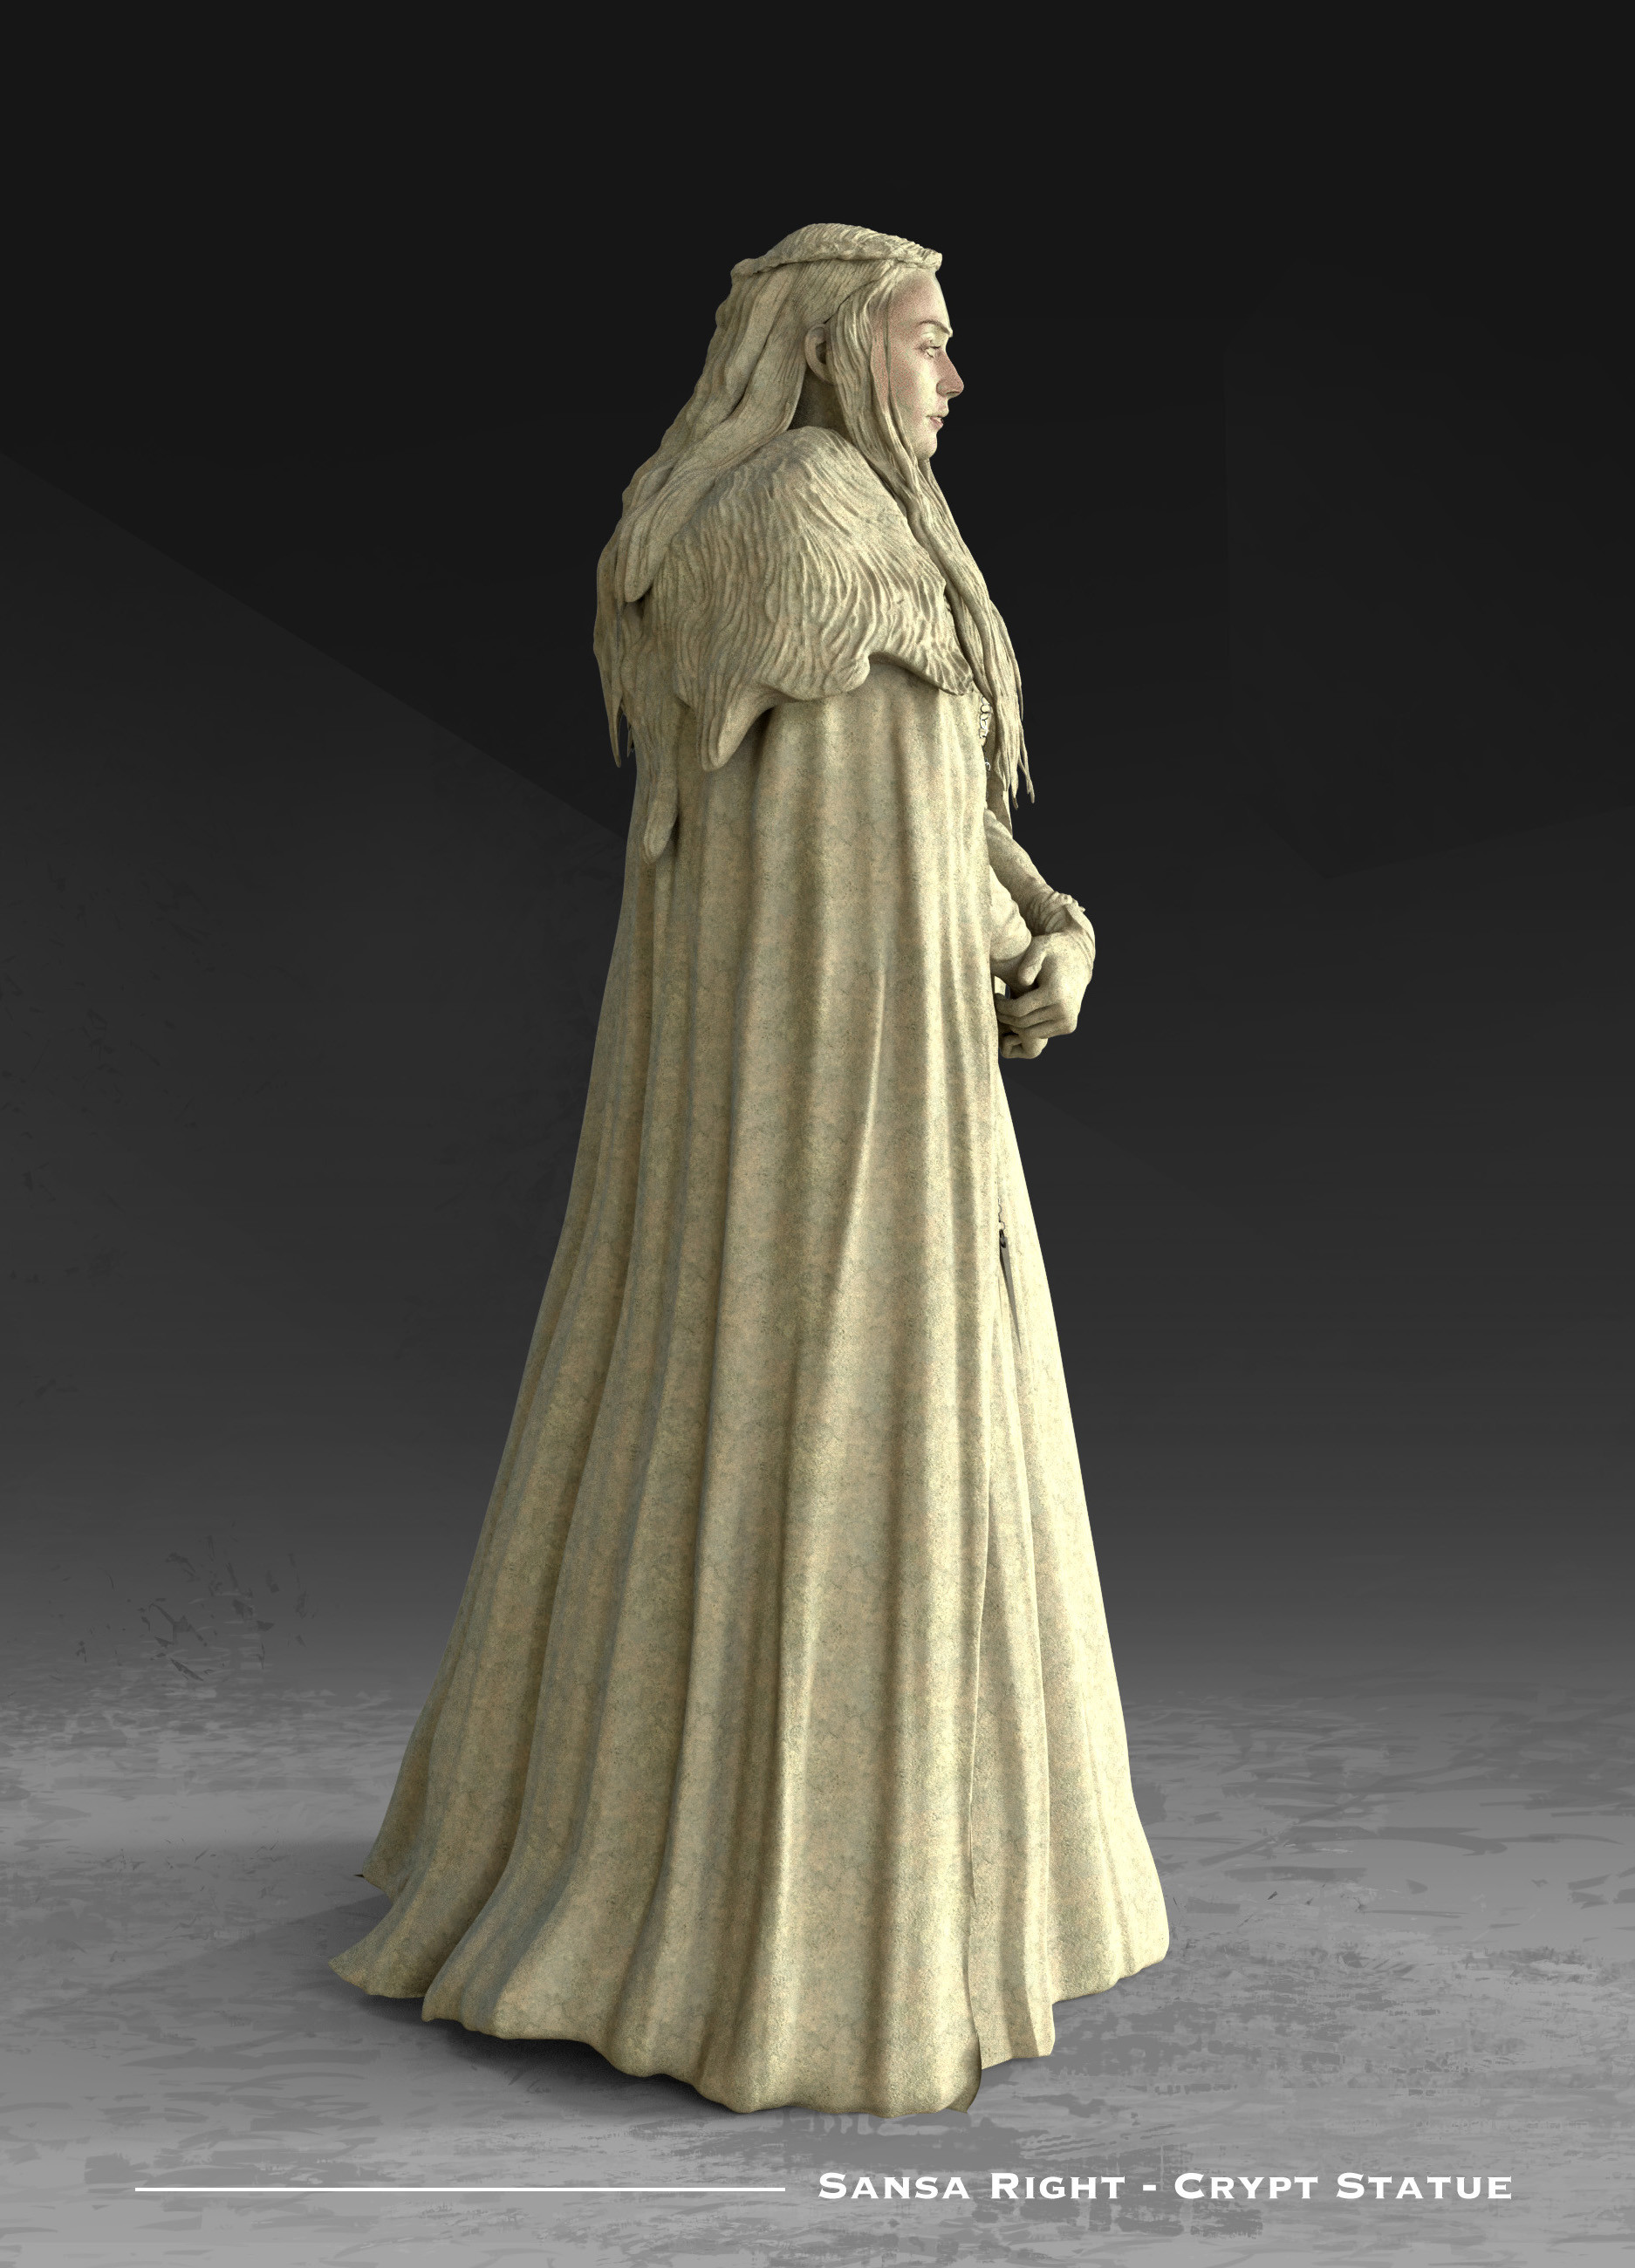 Kieran belshaw sansa statue right v001